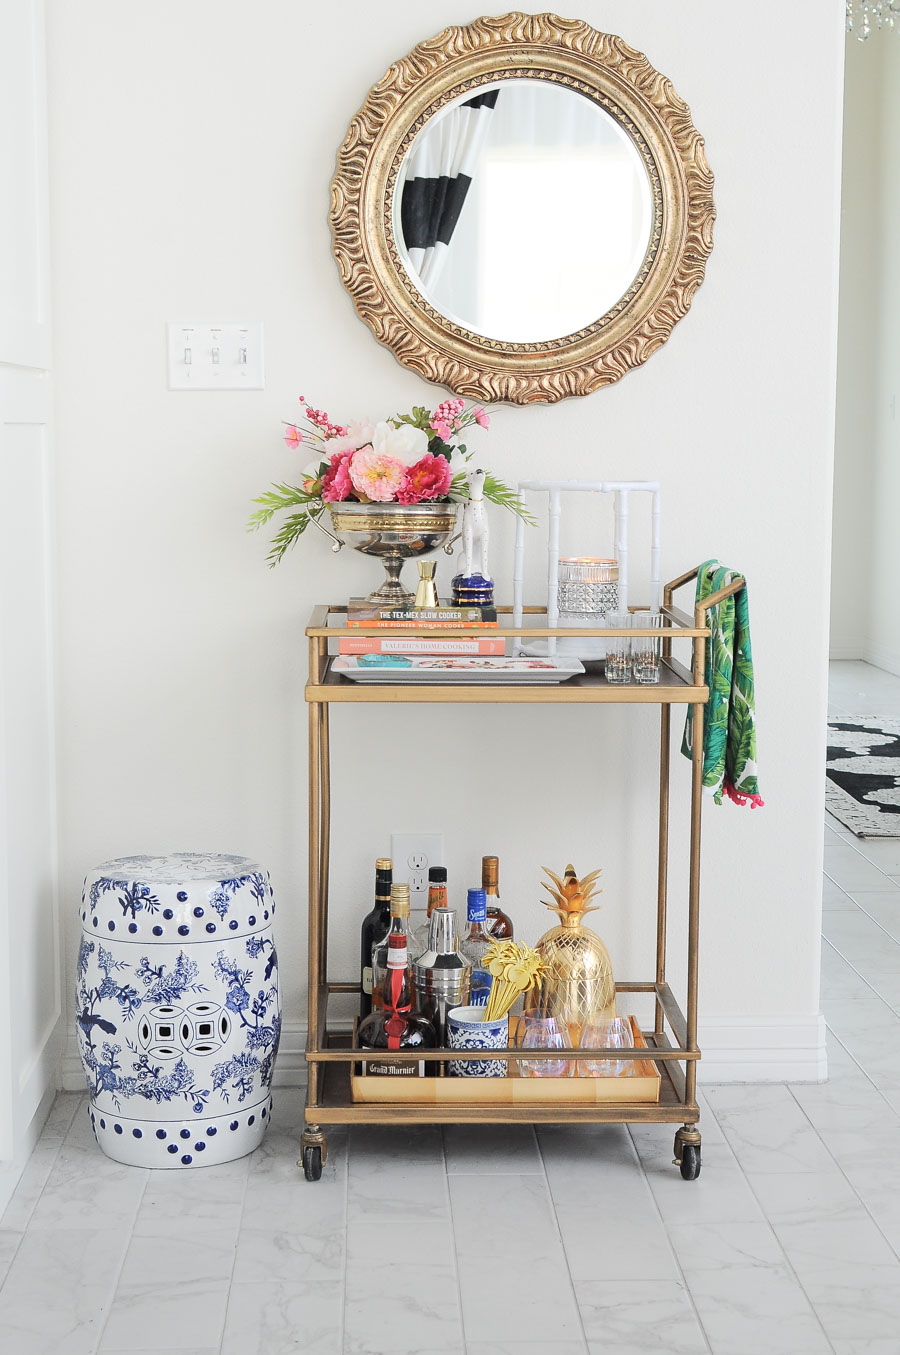 Gold bar cart styling tips and ideas for spring. Love the chinoiserie vibe and bright florals.